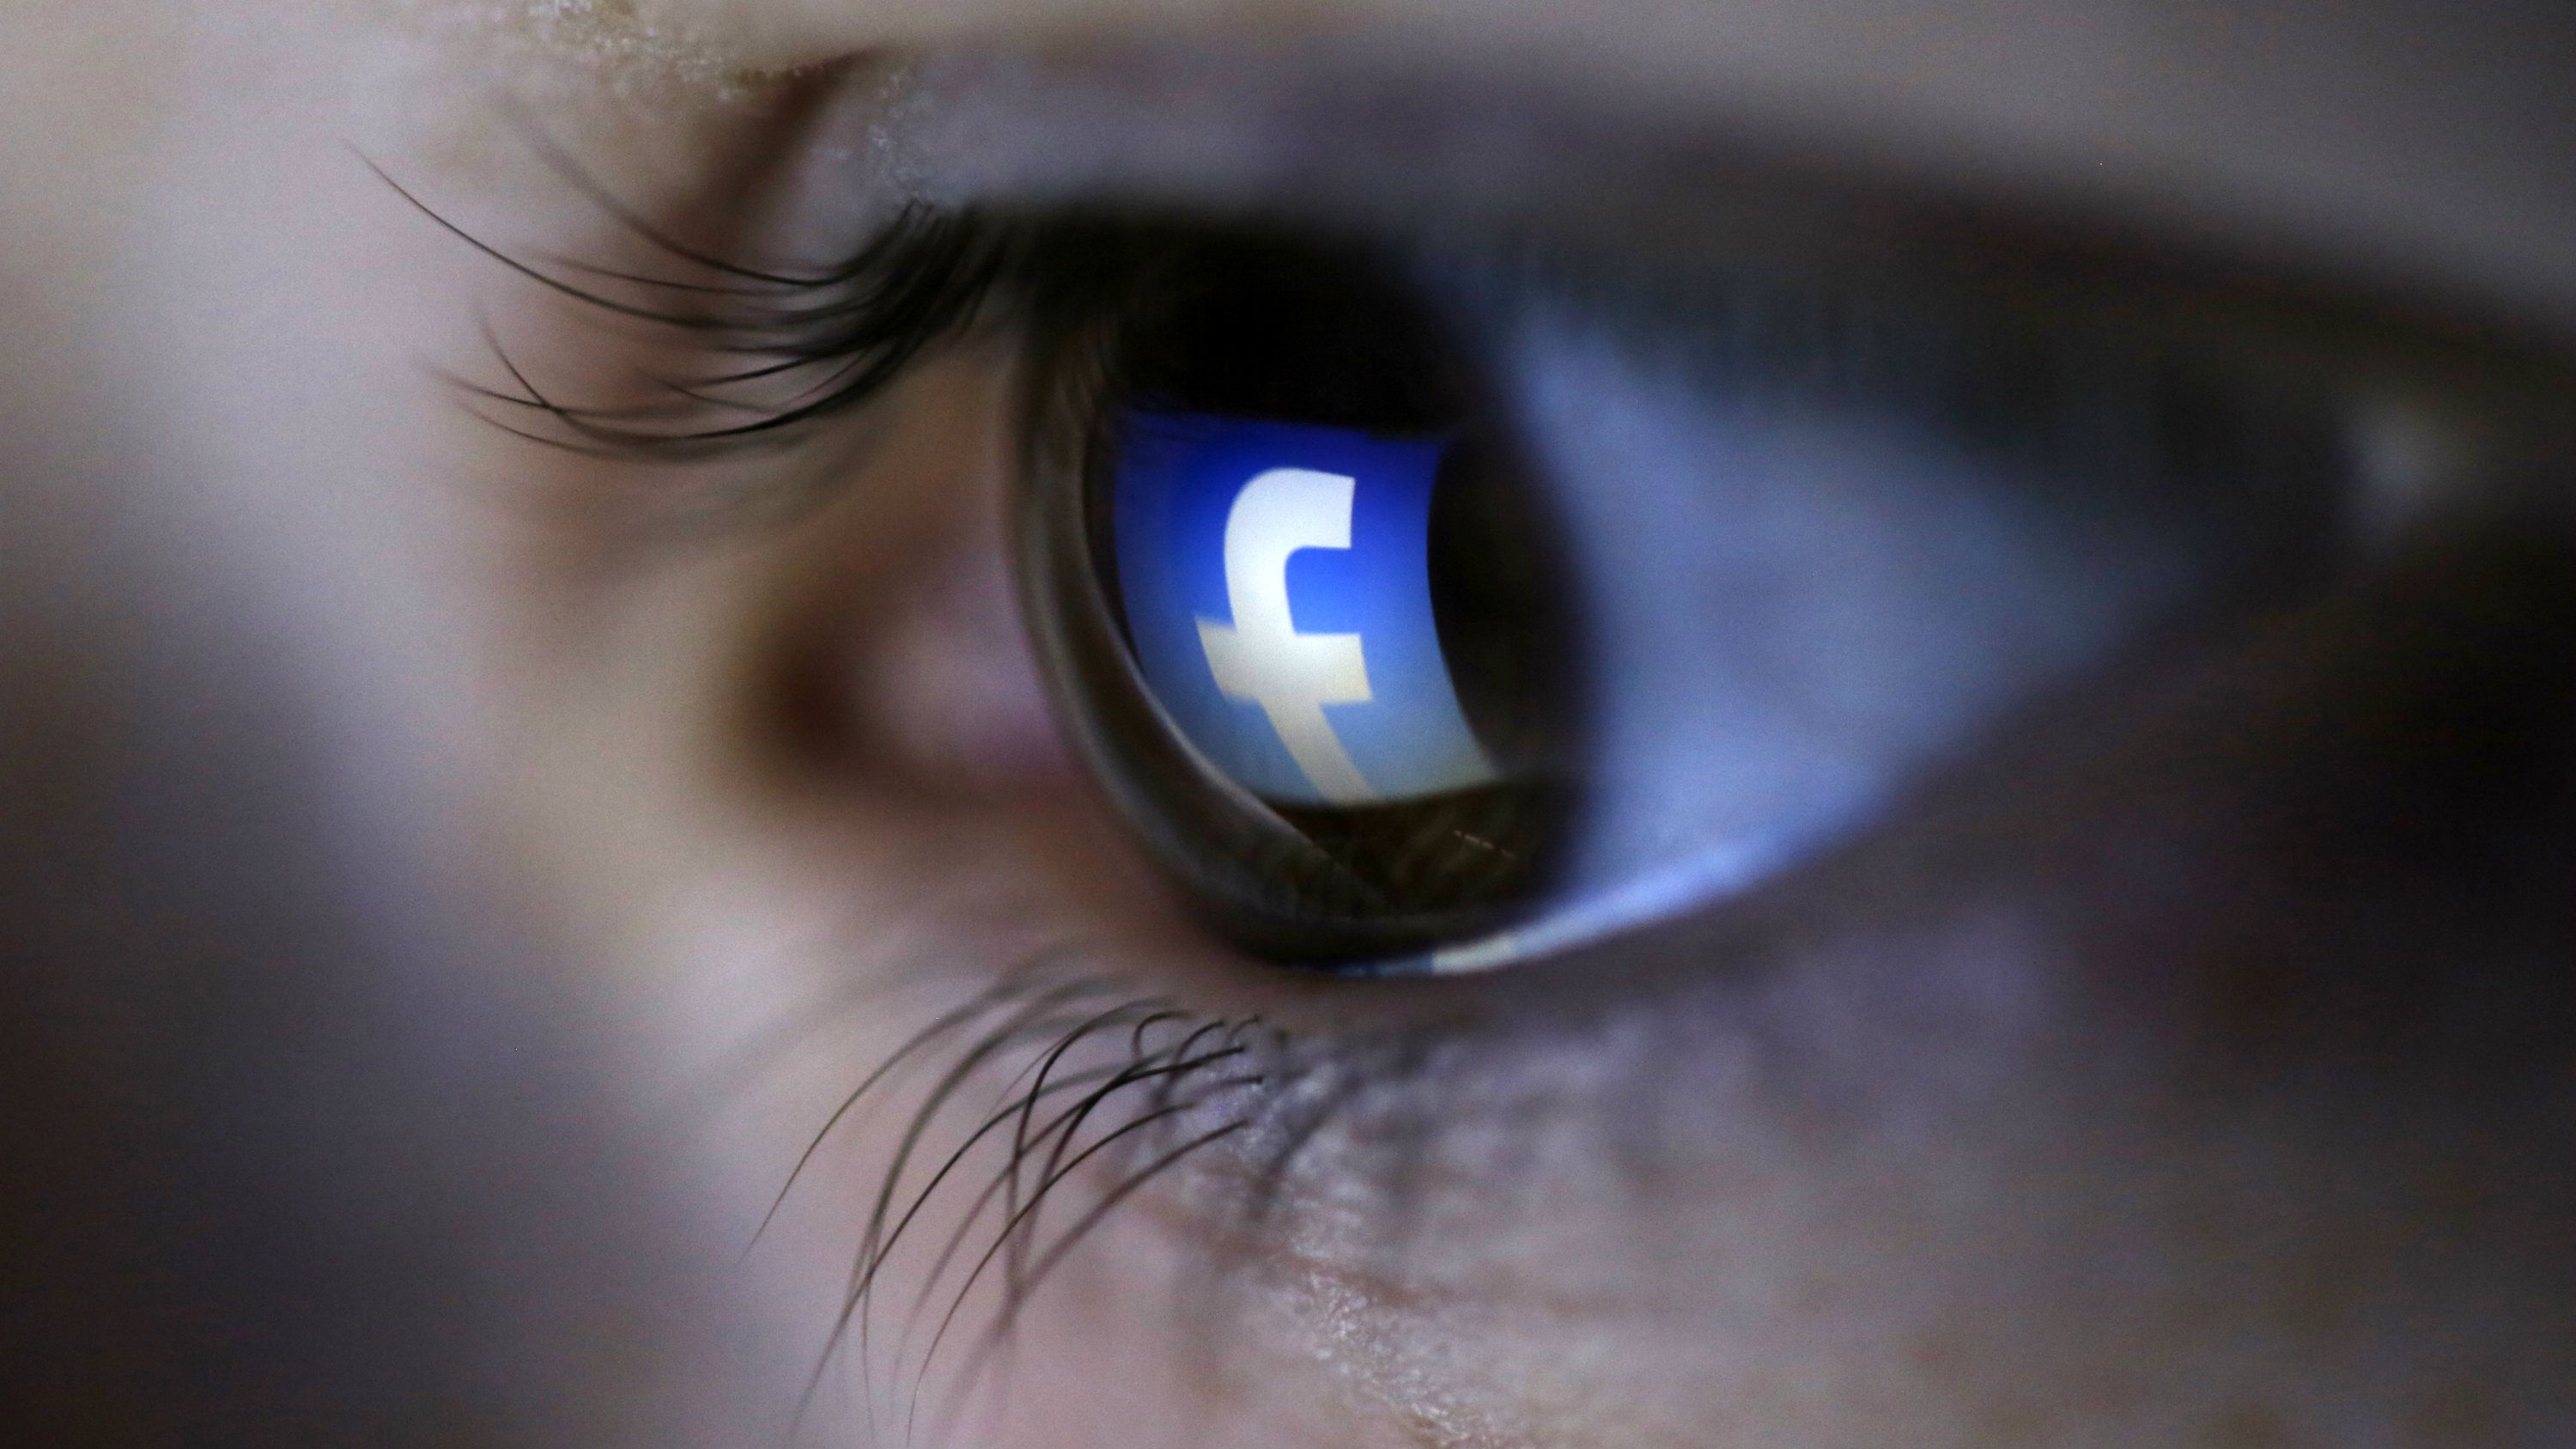 Our memories are shaped by Facebook.